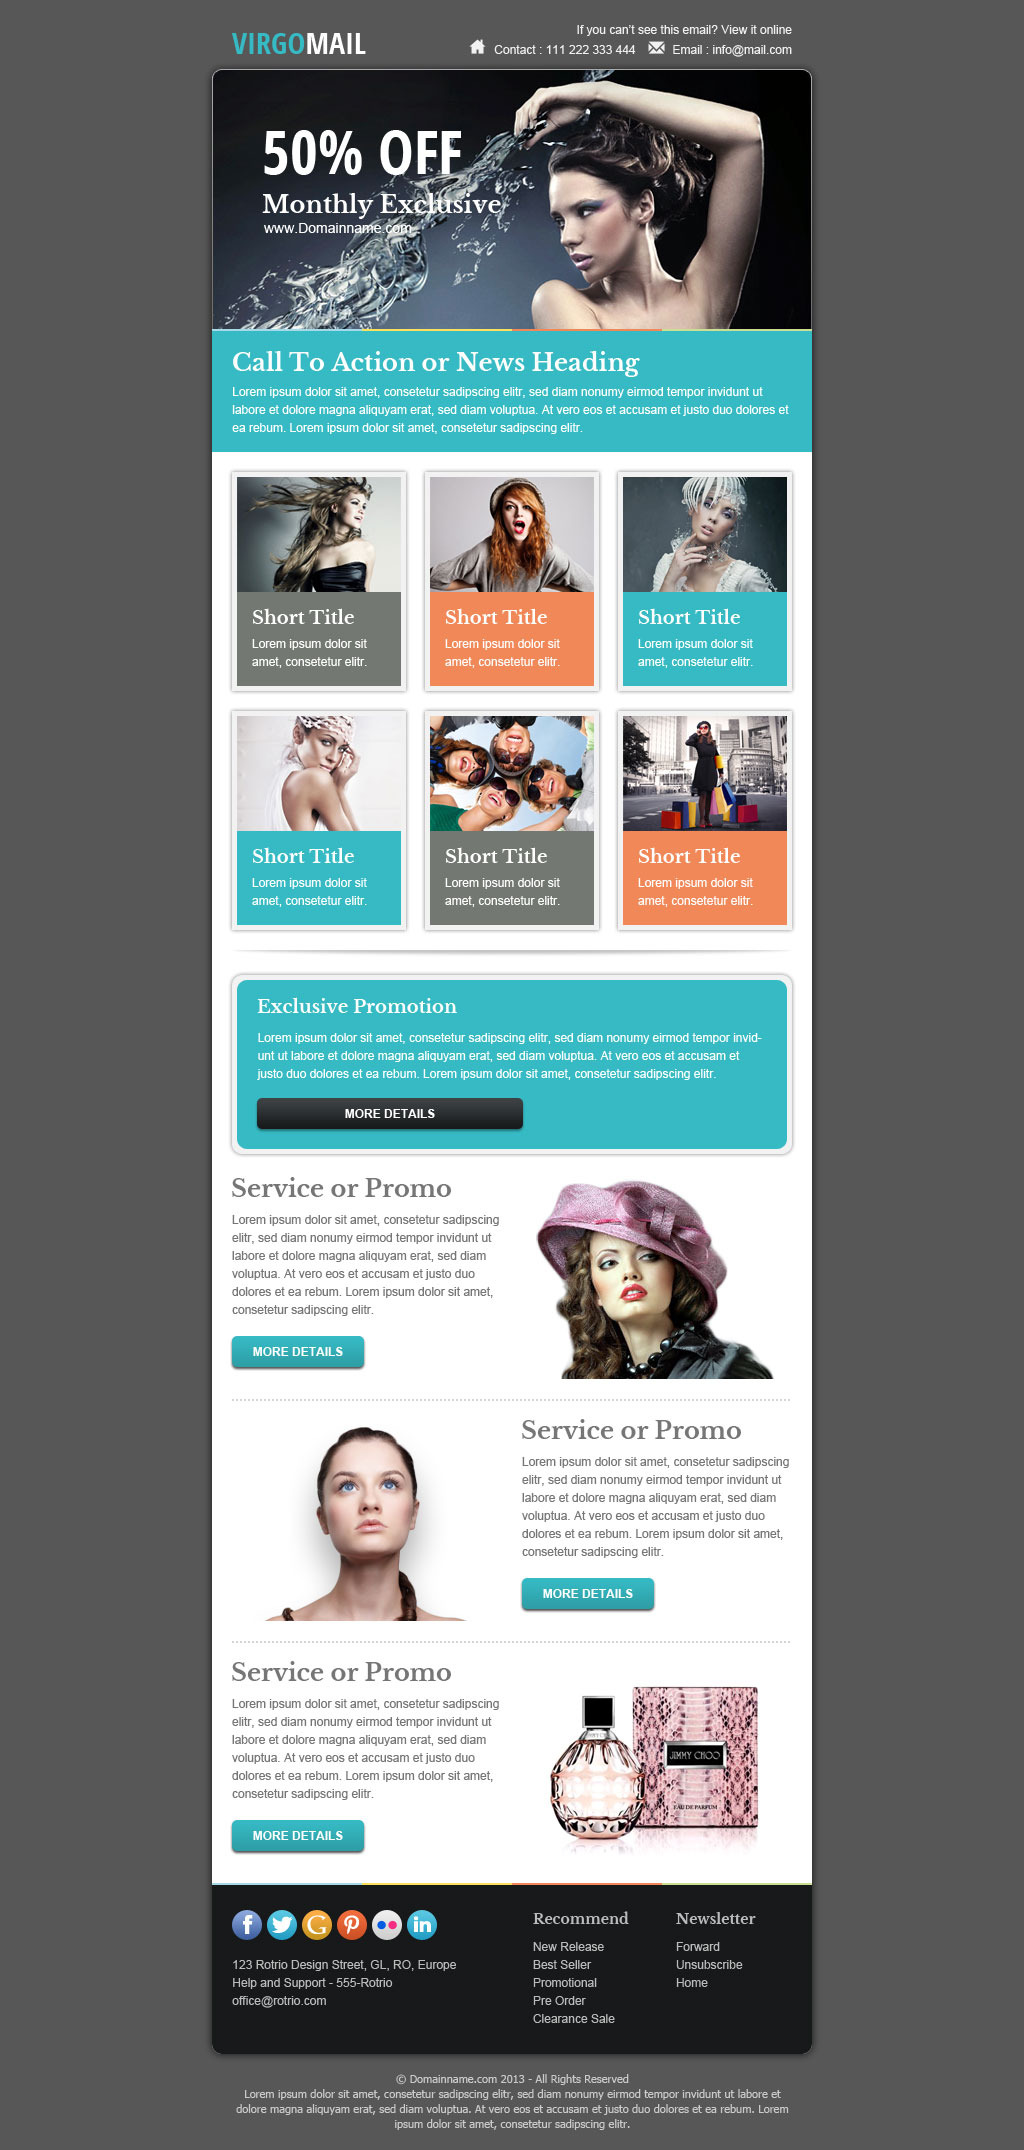 free promotional email templates - virgomail email marketing newsletter template by